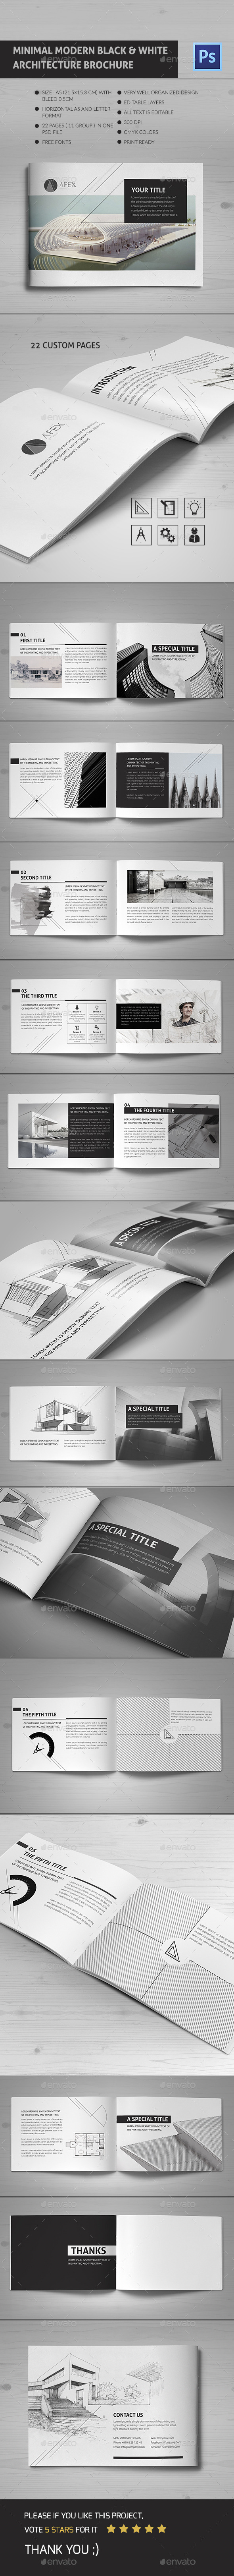 GraphicRiver Minimal Modern Black & White Architecture Brochure 11785566